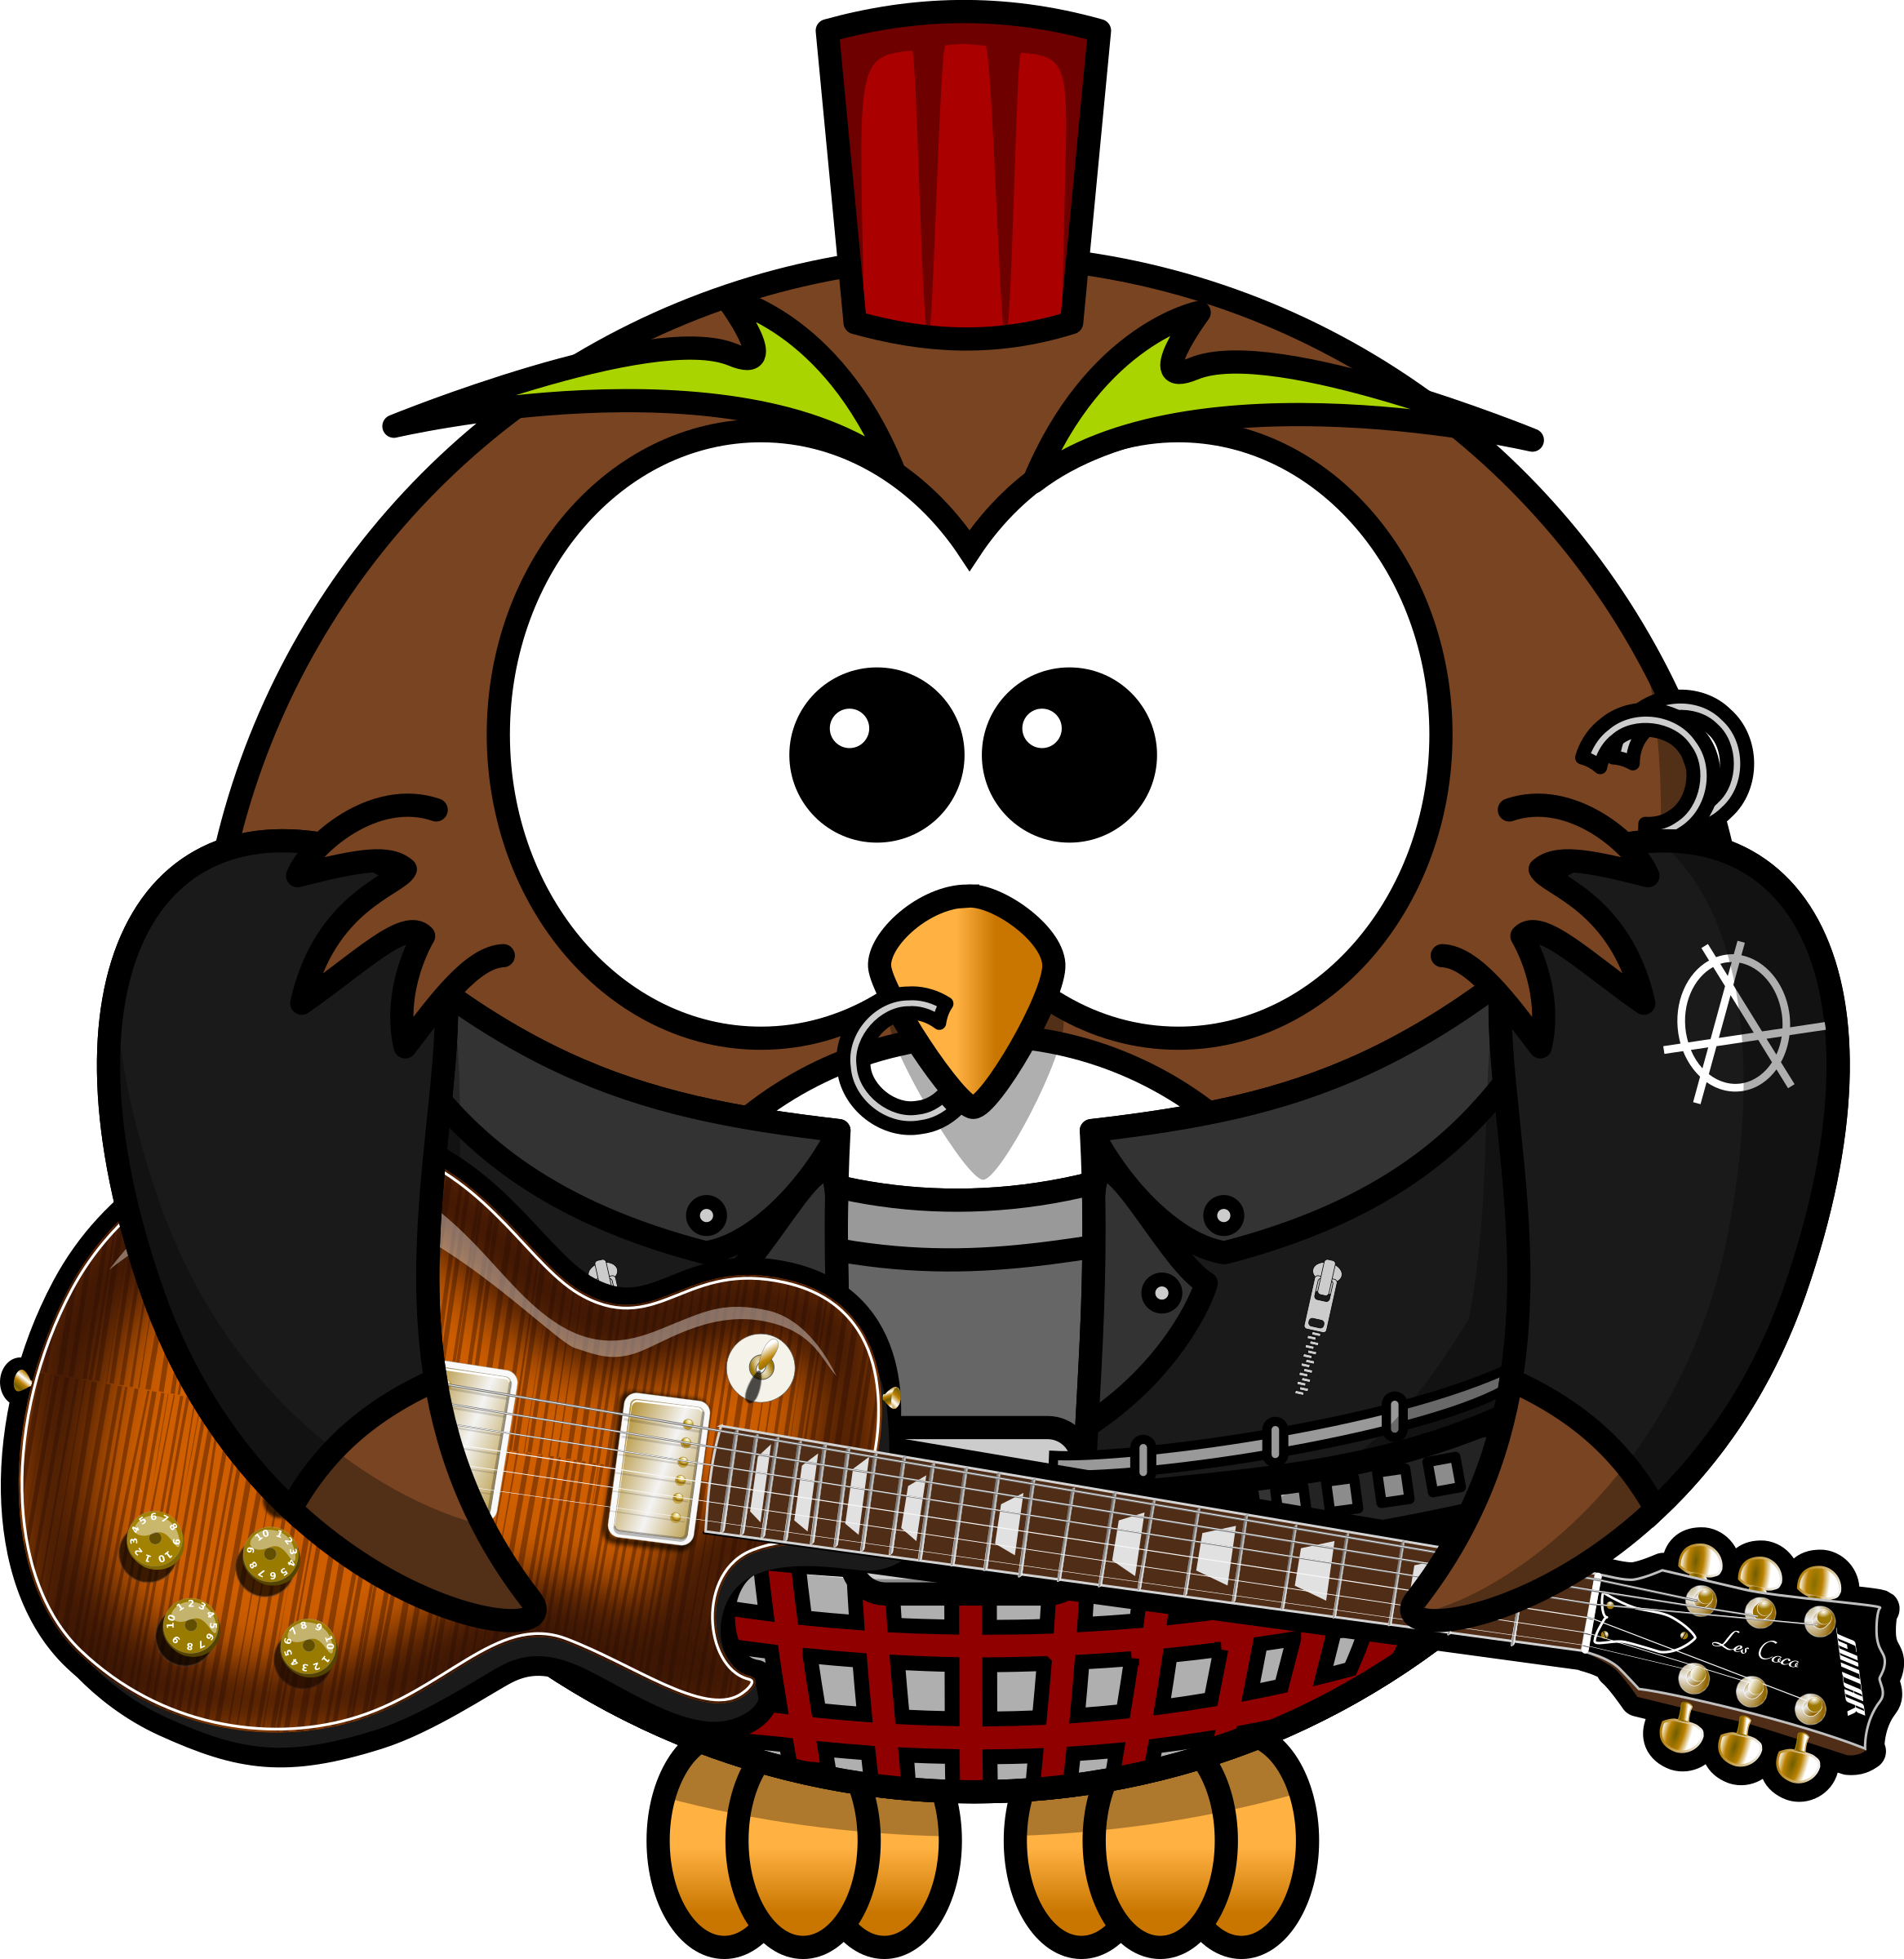 Punk Owl by bocian